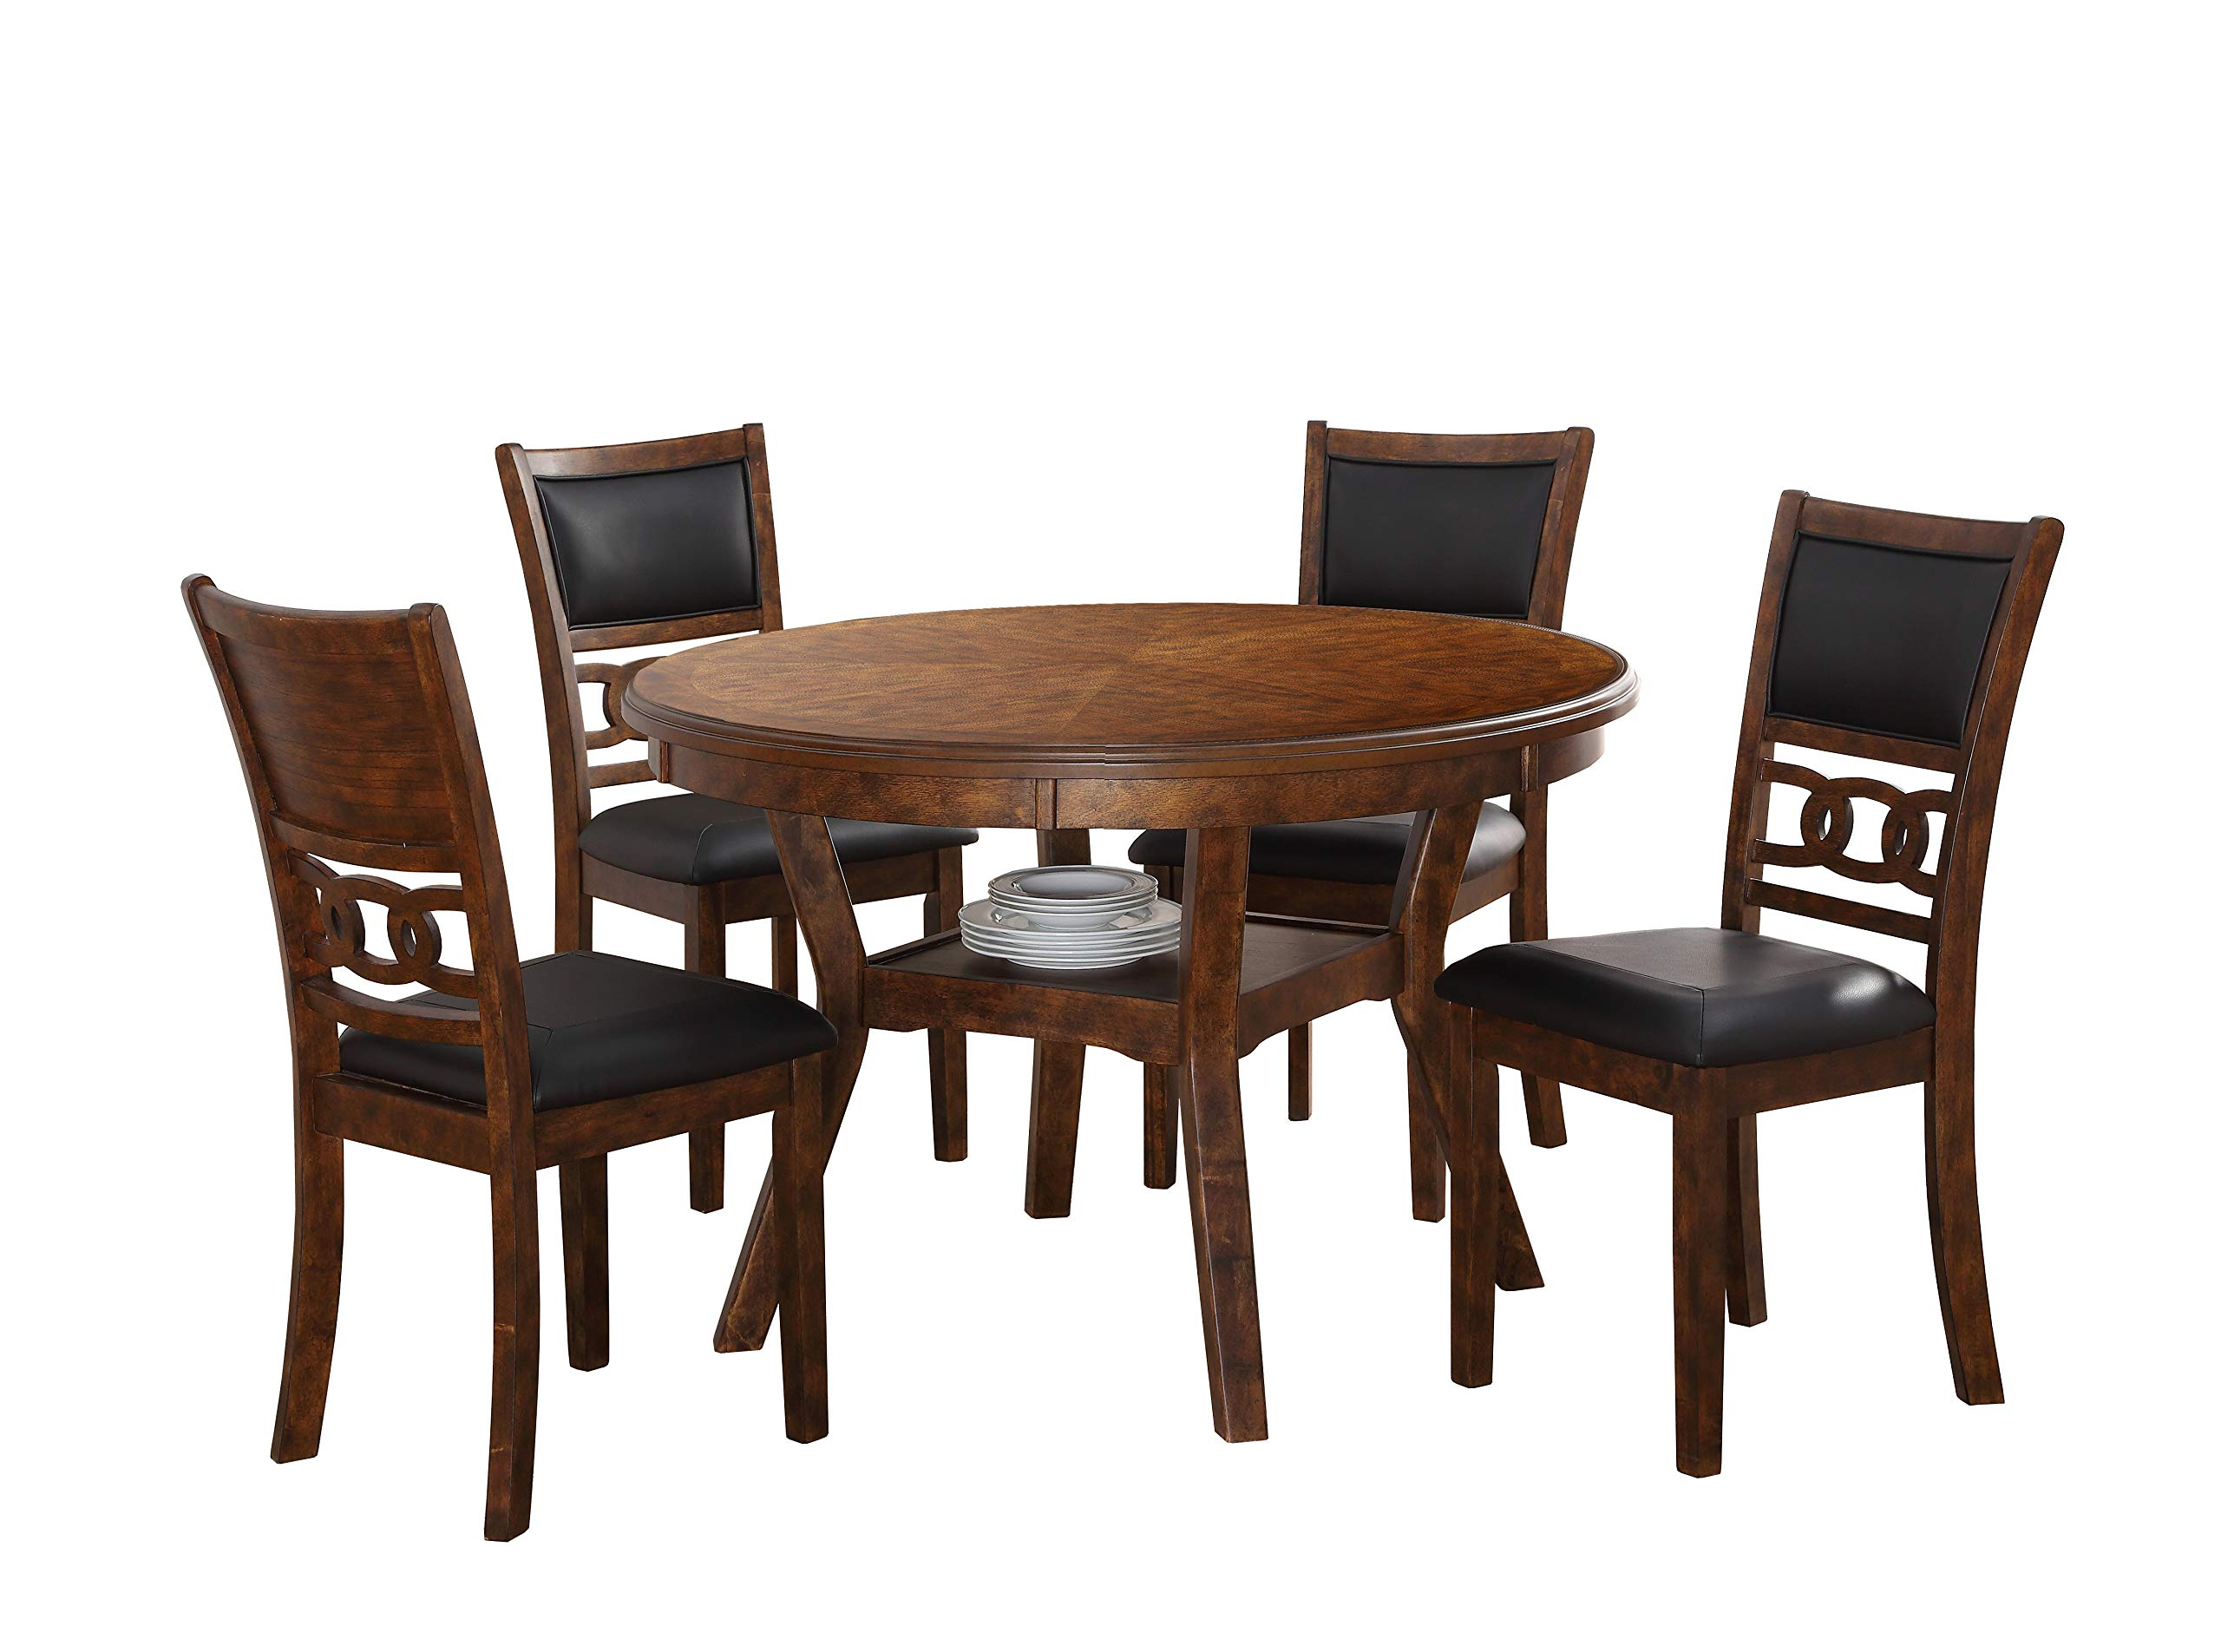 New Classic Furniture D1701 Gia Round Dining Set, 5 Piece, Brown by New Classic Furniture